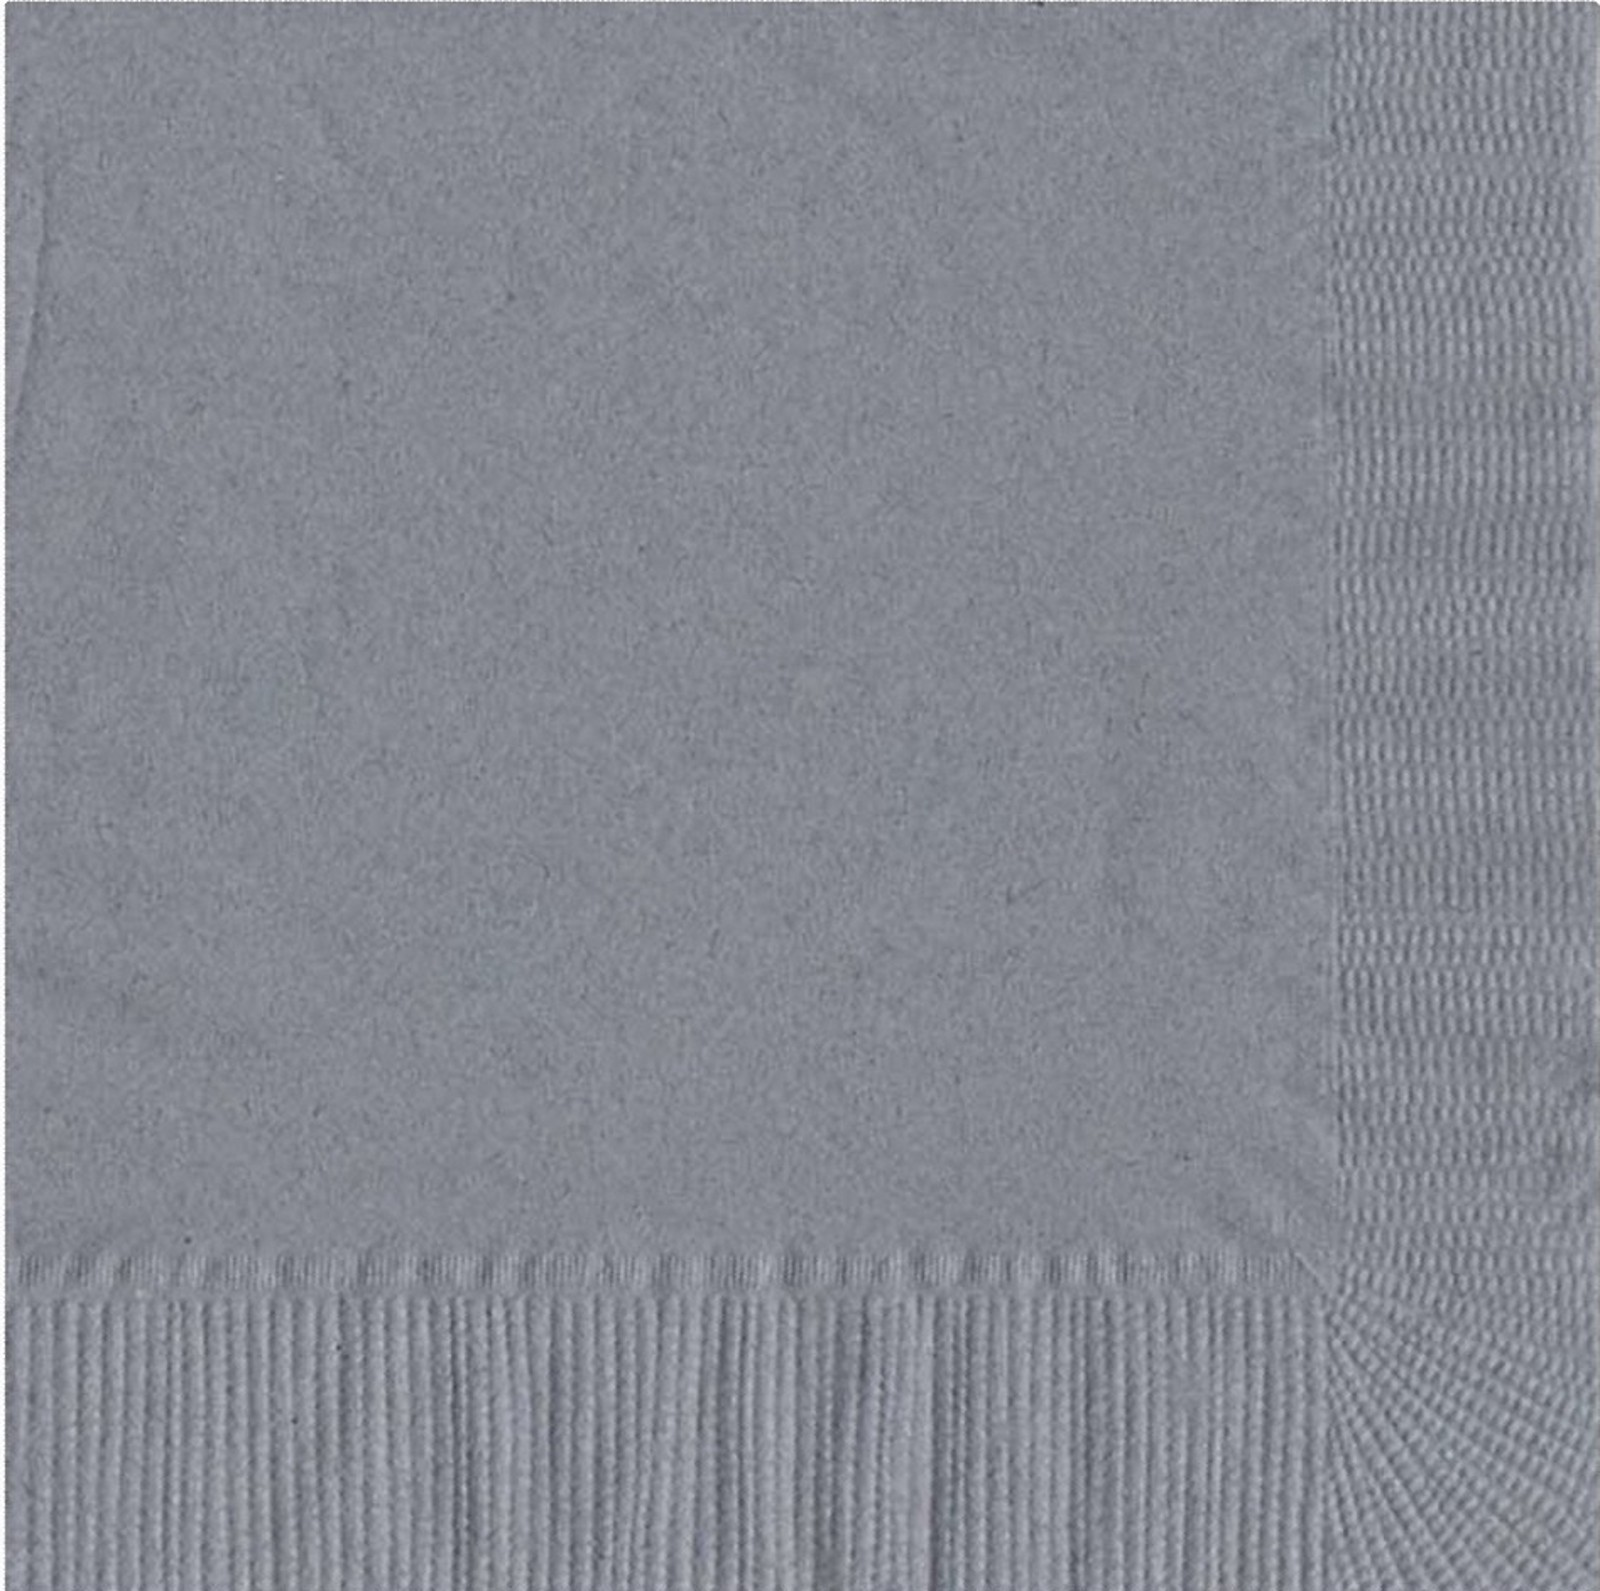 50 Plain Solid Colors Luncheon Dinner Napkins Paper - Silver